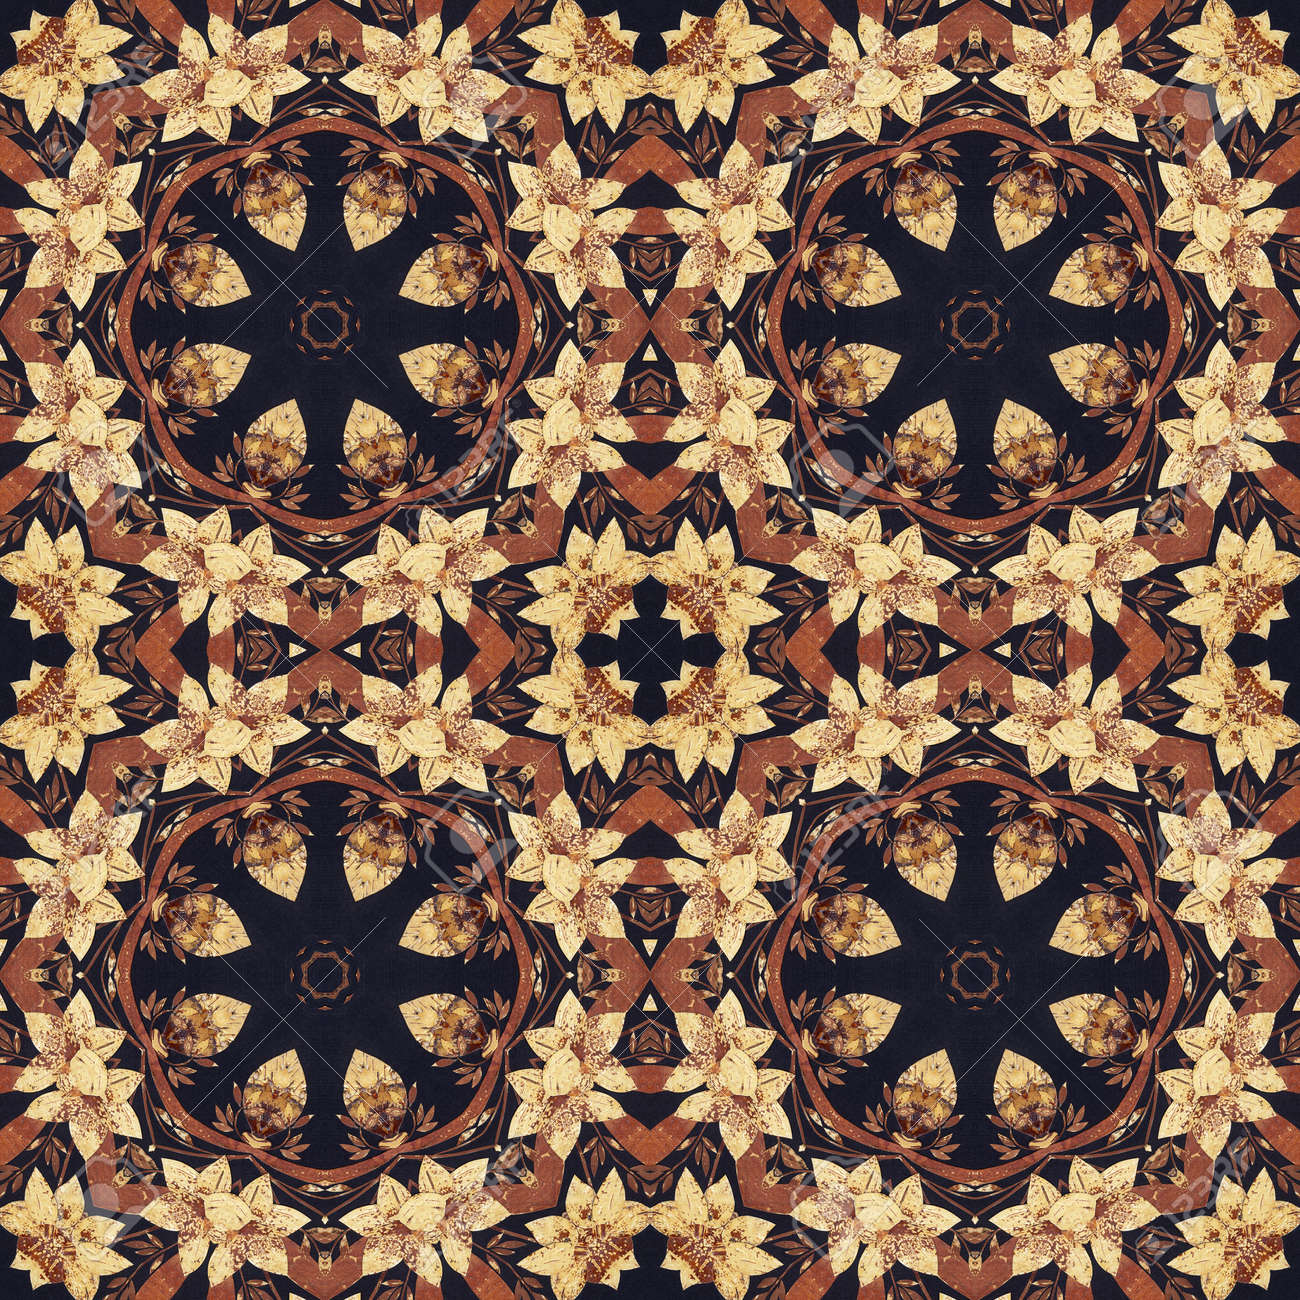 Abstract artistic pattern, seamless handmade floral ornament, applique from the back side of a birch bark on black fabric background - 29183028